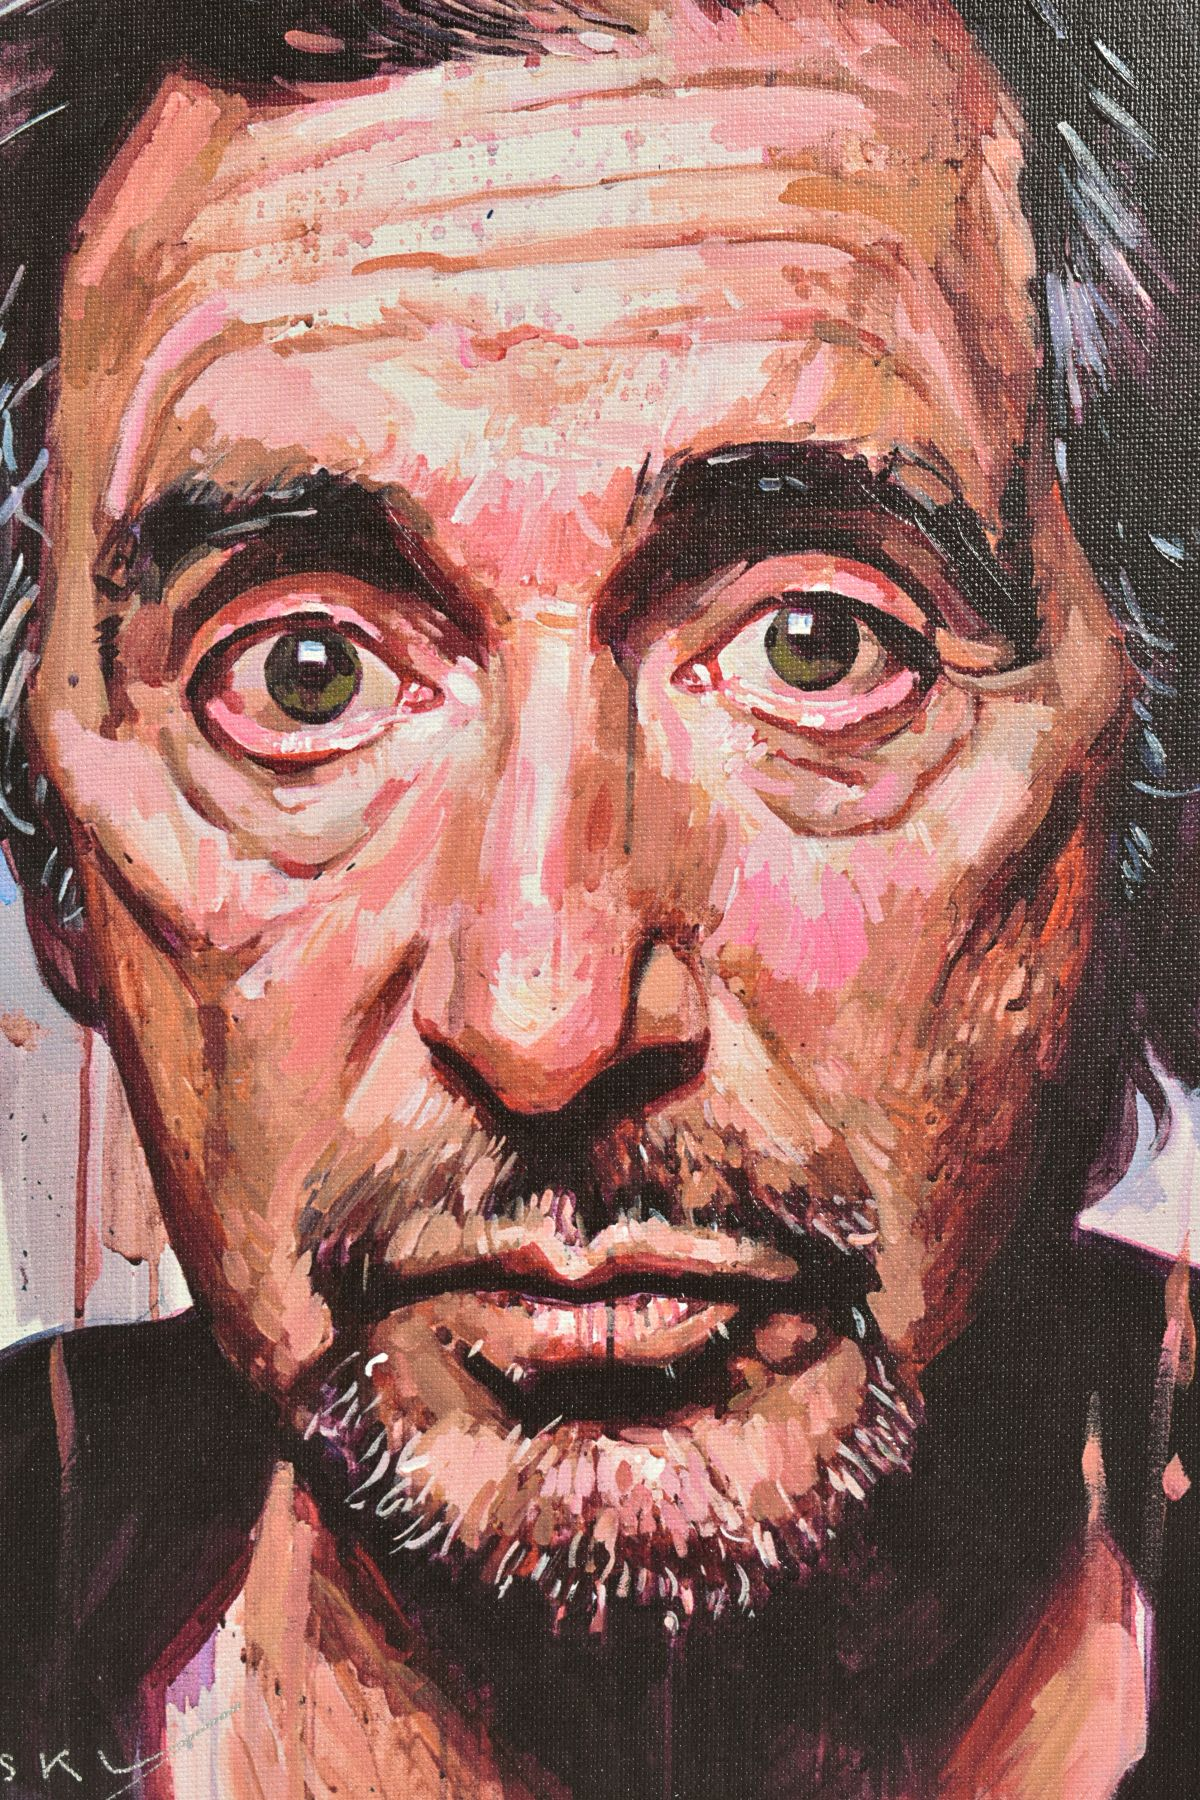 ZINSKY (BRITISH CONTEMPORARY), 'AL Pacino II', a portrait of the film star, a Limited Edition print, - Image 2 of 5